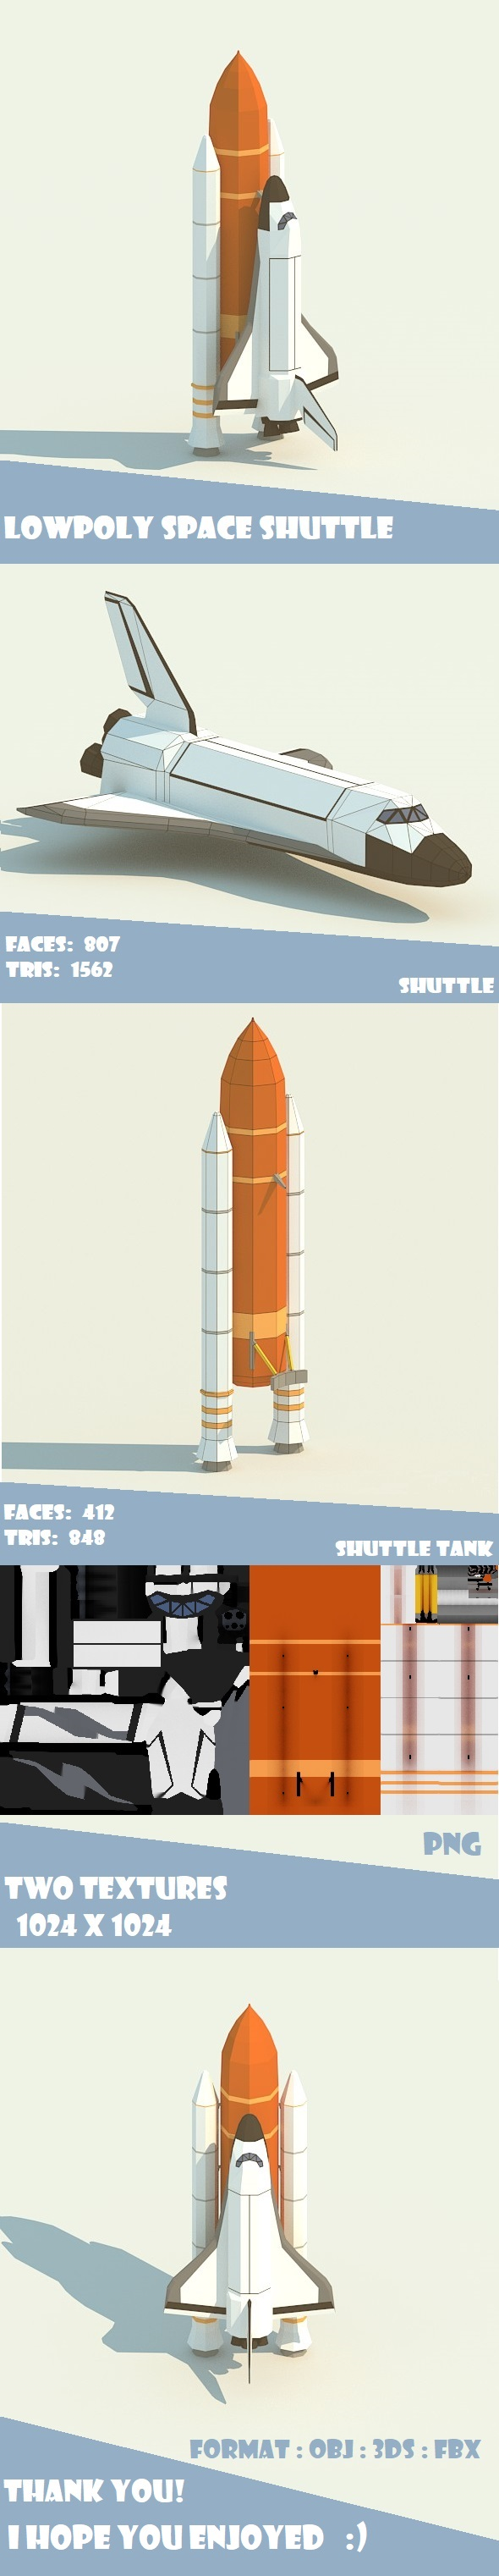 LowPoly Space Shuttle - 3DOcean Item for Sale